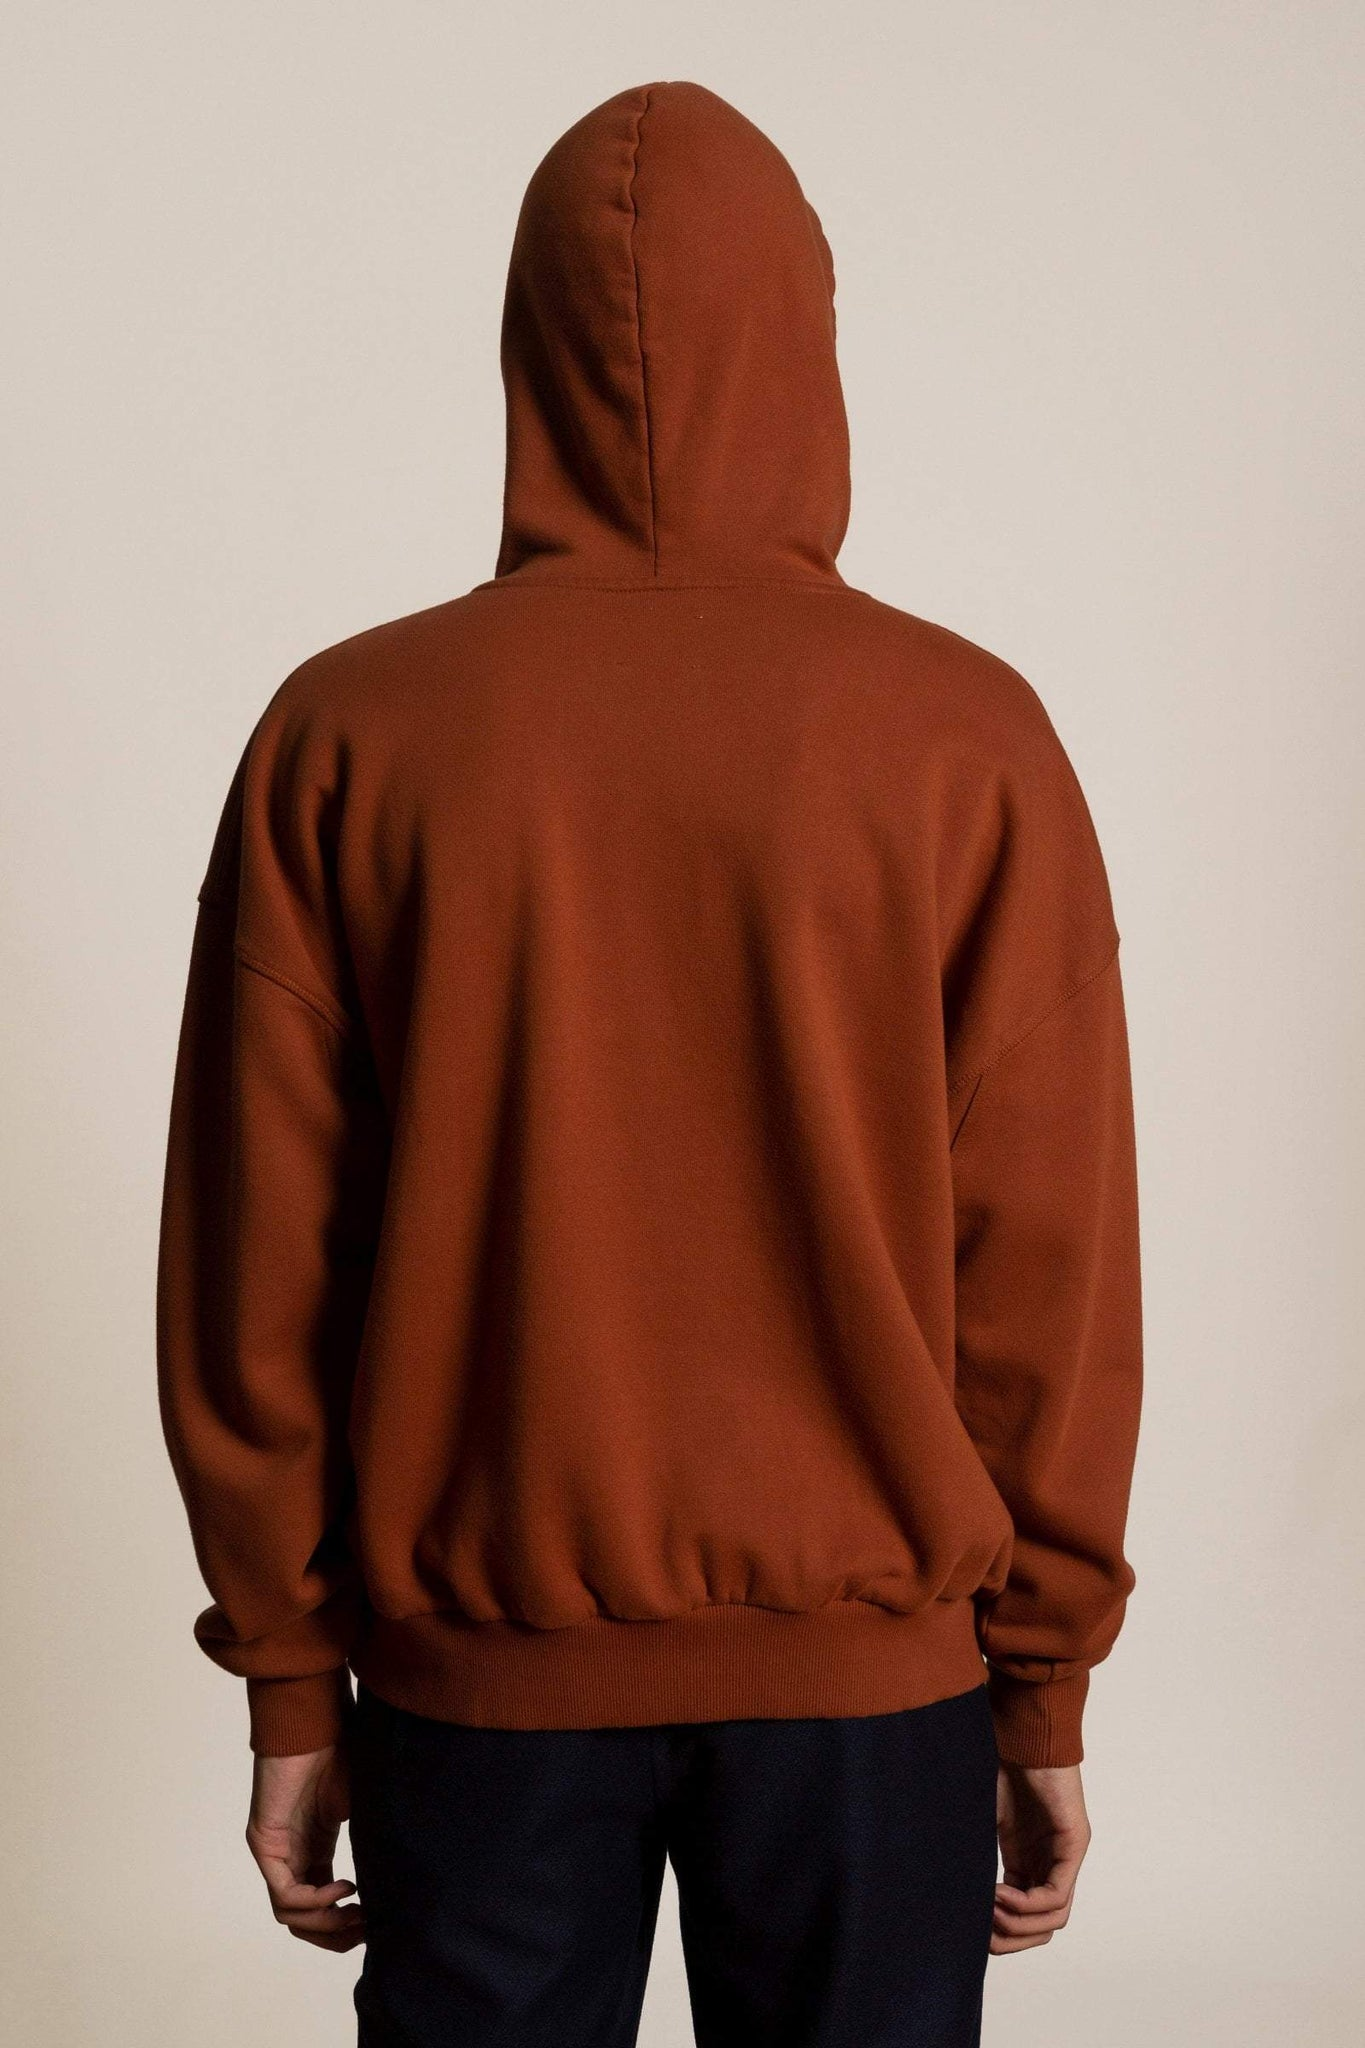 Oversized sweatshirt Hoodie - Red brown